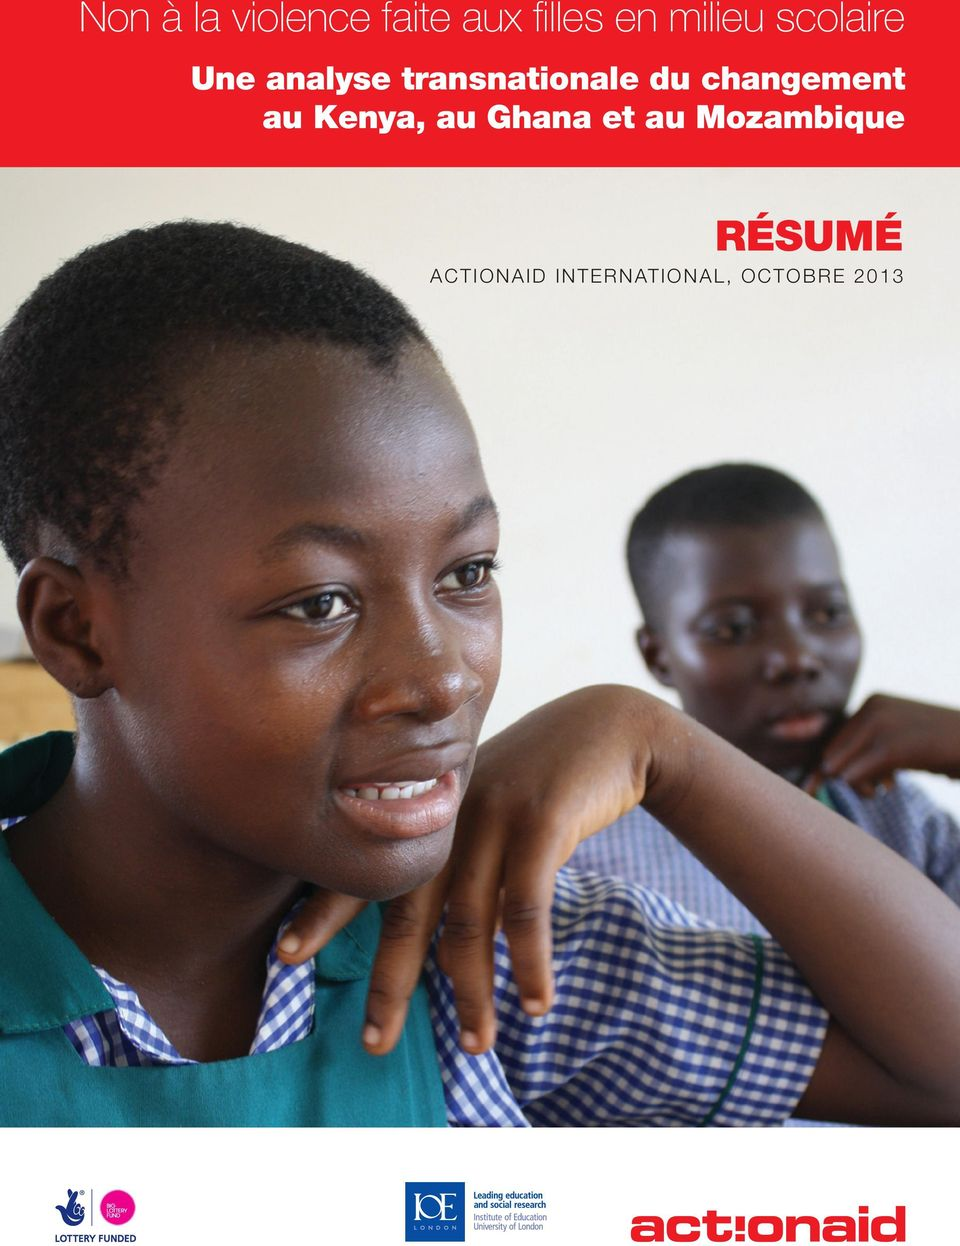 au Mozambique Résumé ActionAid International, octobre 2013